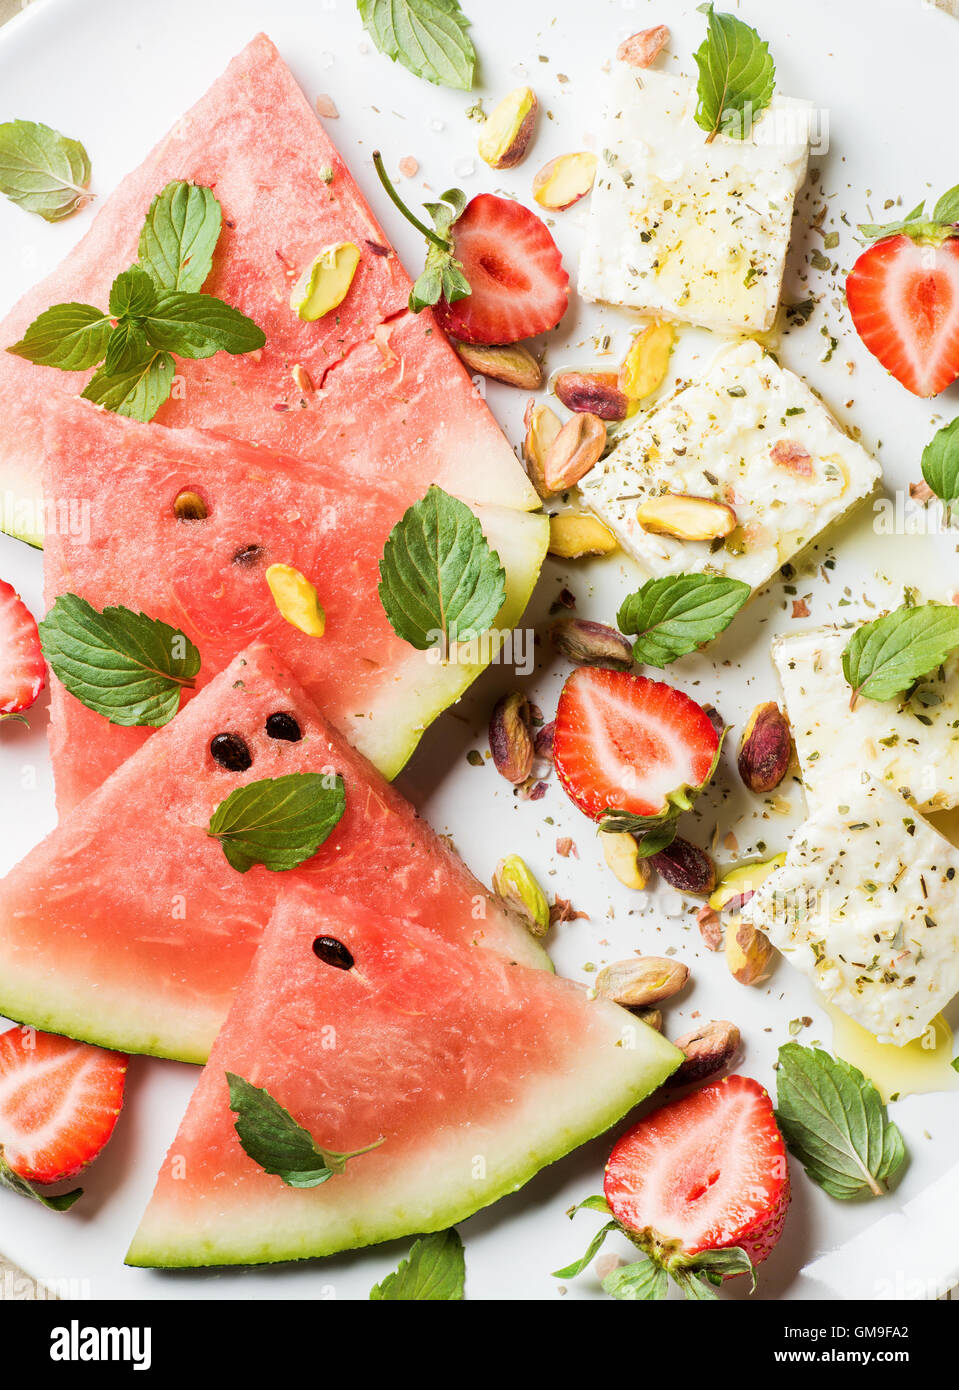 Summer watermelon, strawberry and feta cheese salad with pistachios - Stock Image